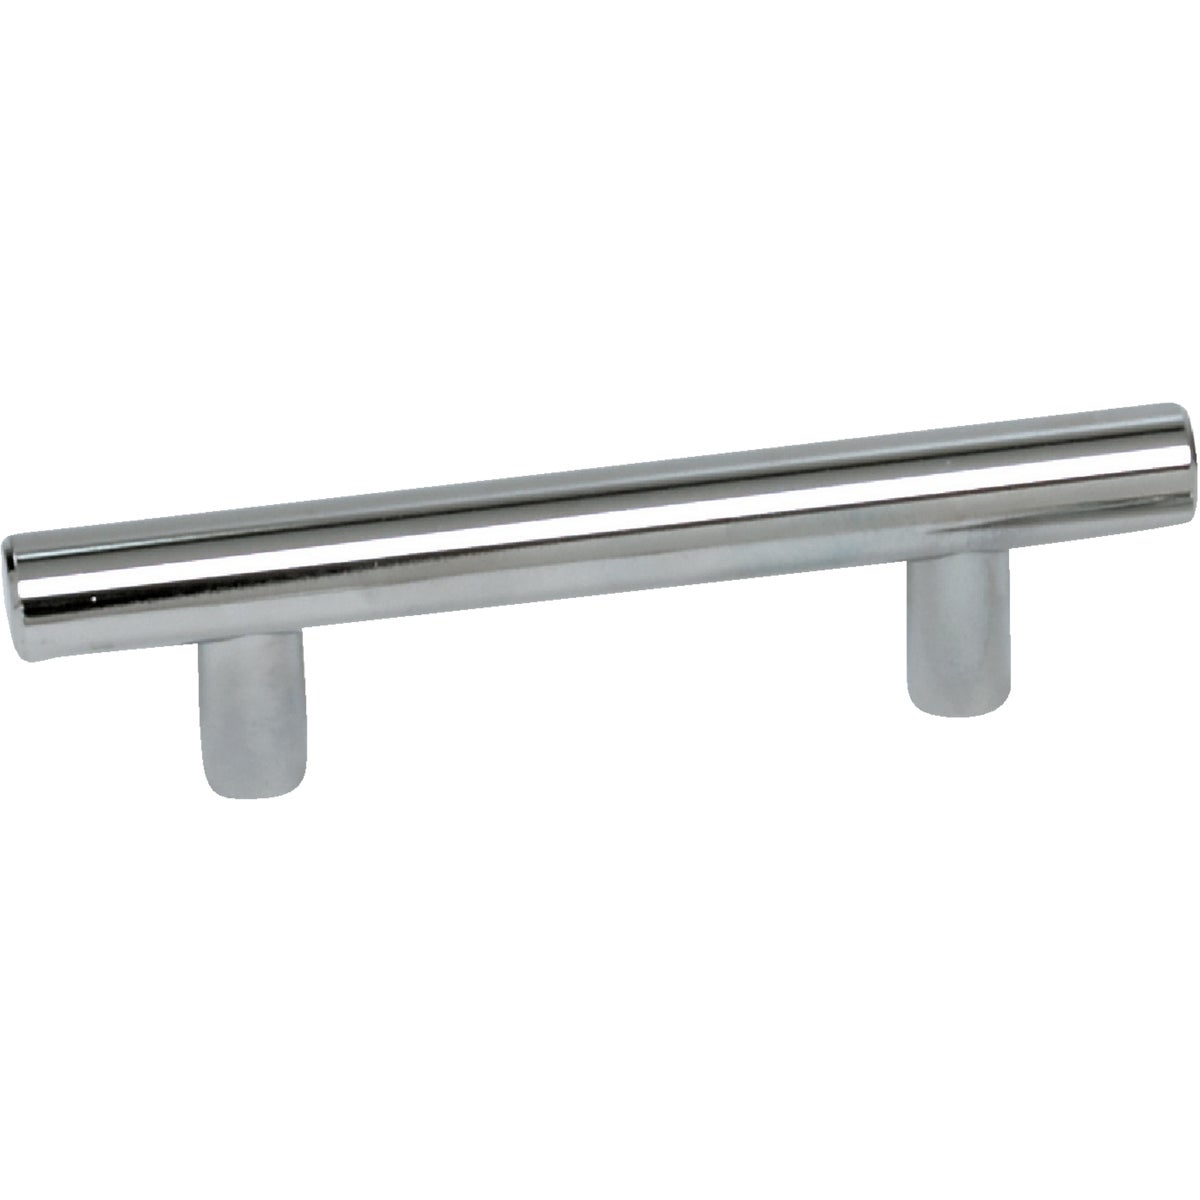 "4"" STAINLESS STEEL PULL - 89012 by Laurey Co"